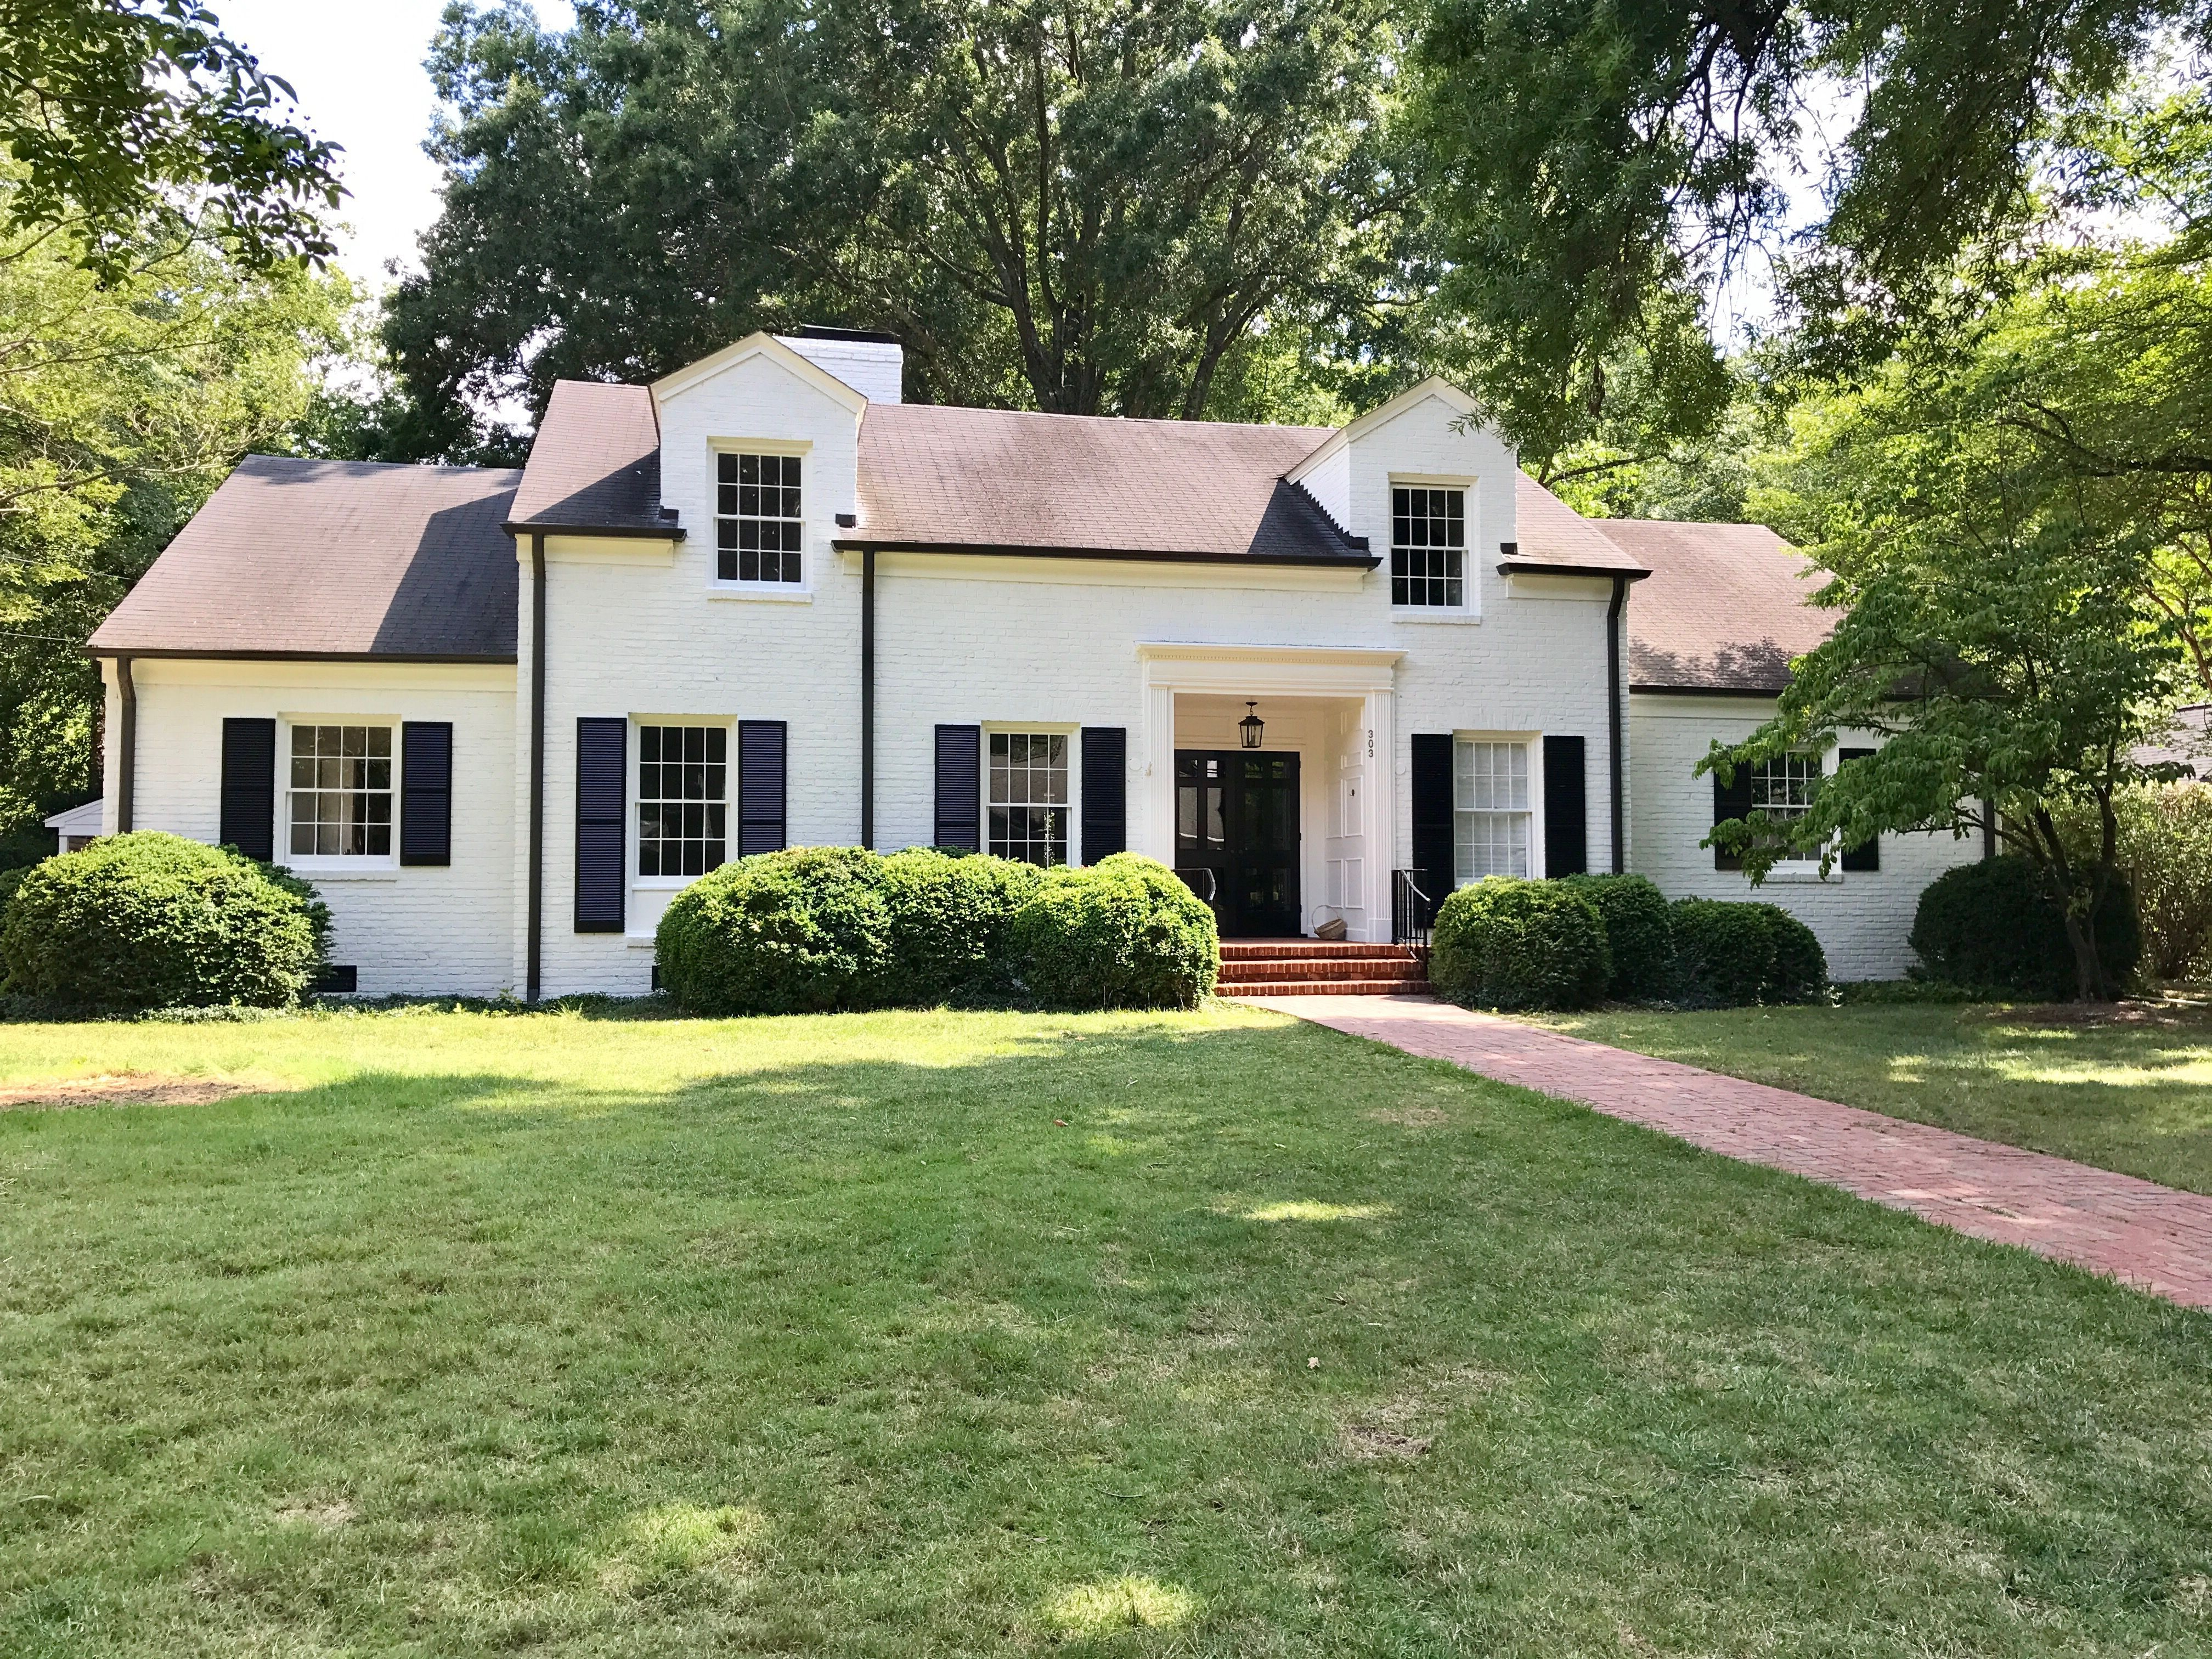 Exterior Paint Color White Brick Traditional House Benjamin Moore White Dove Brick Color Sh Farmhouse Exterior Colors Farmhouse Exterior Brick Painted White